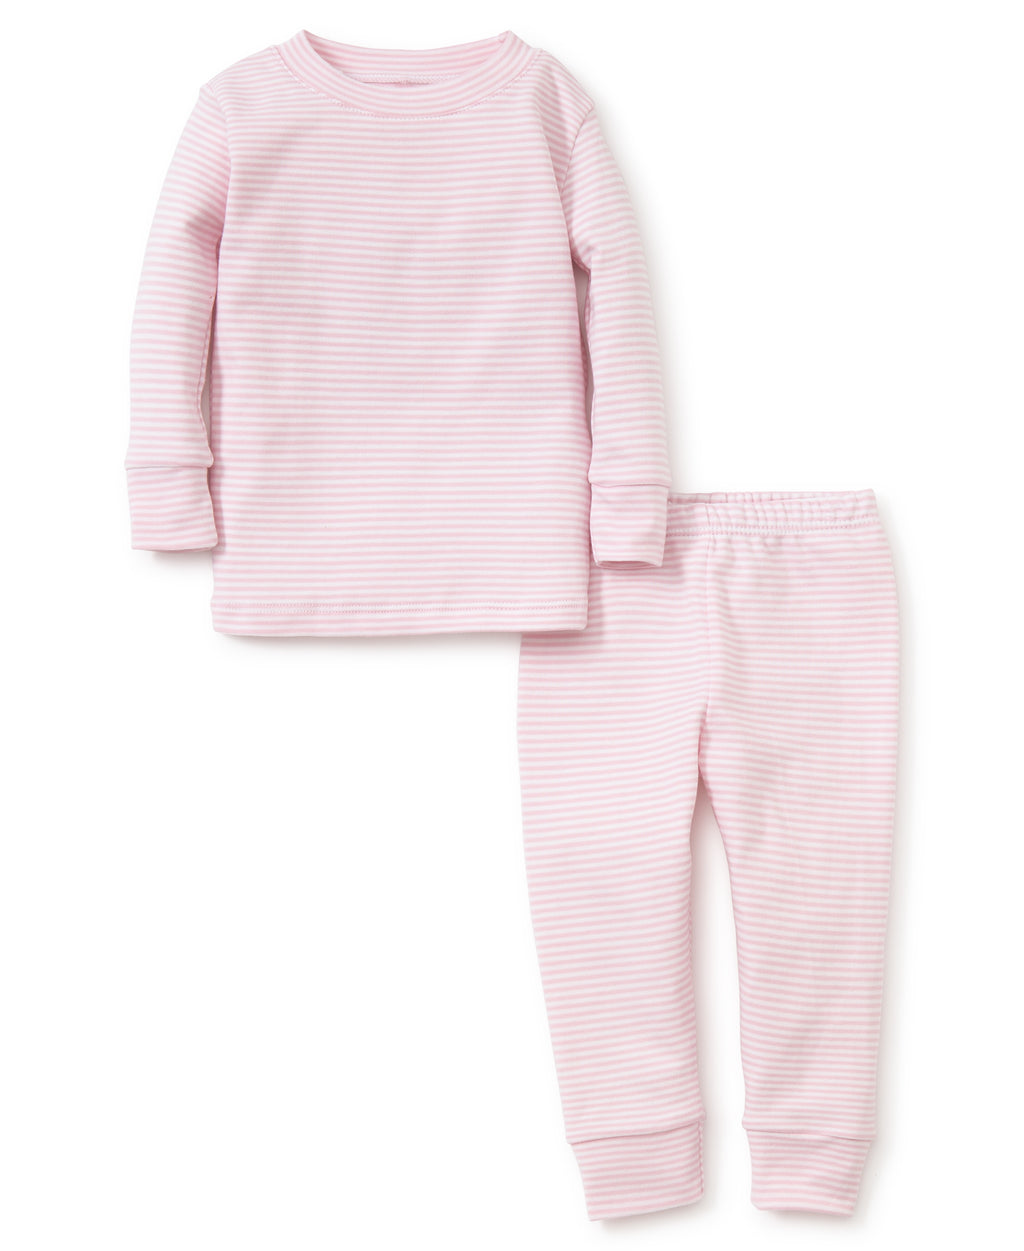 Pink Simple Stripes Pajama Set